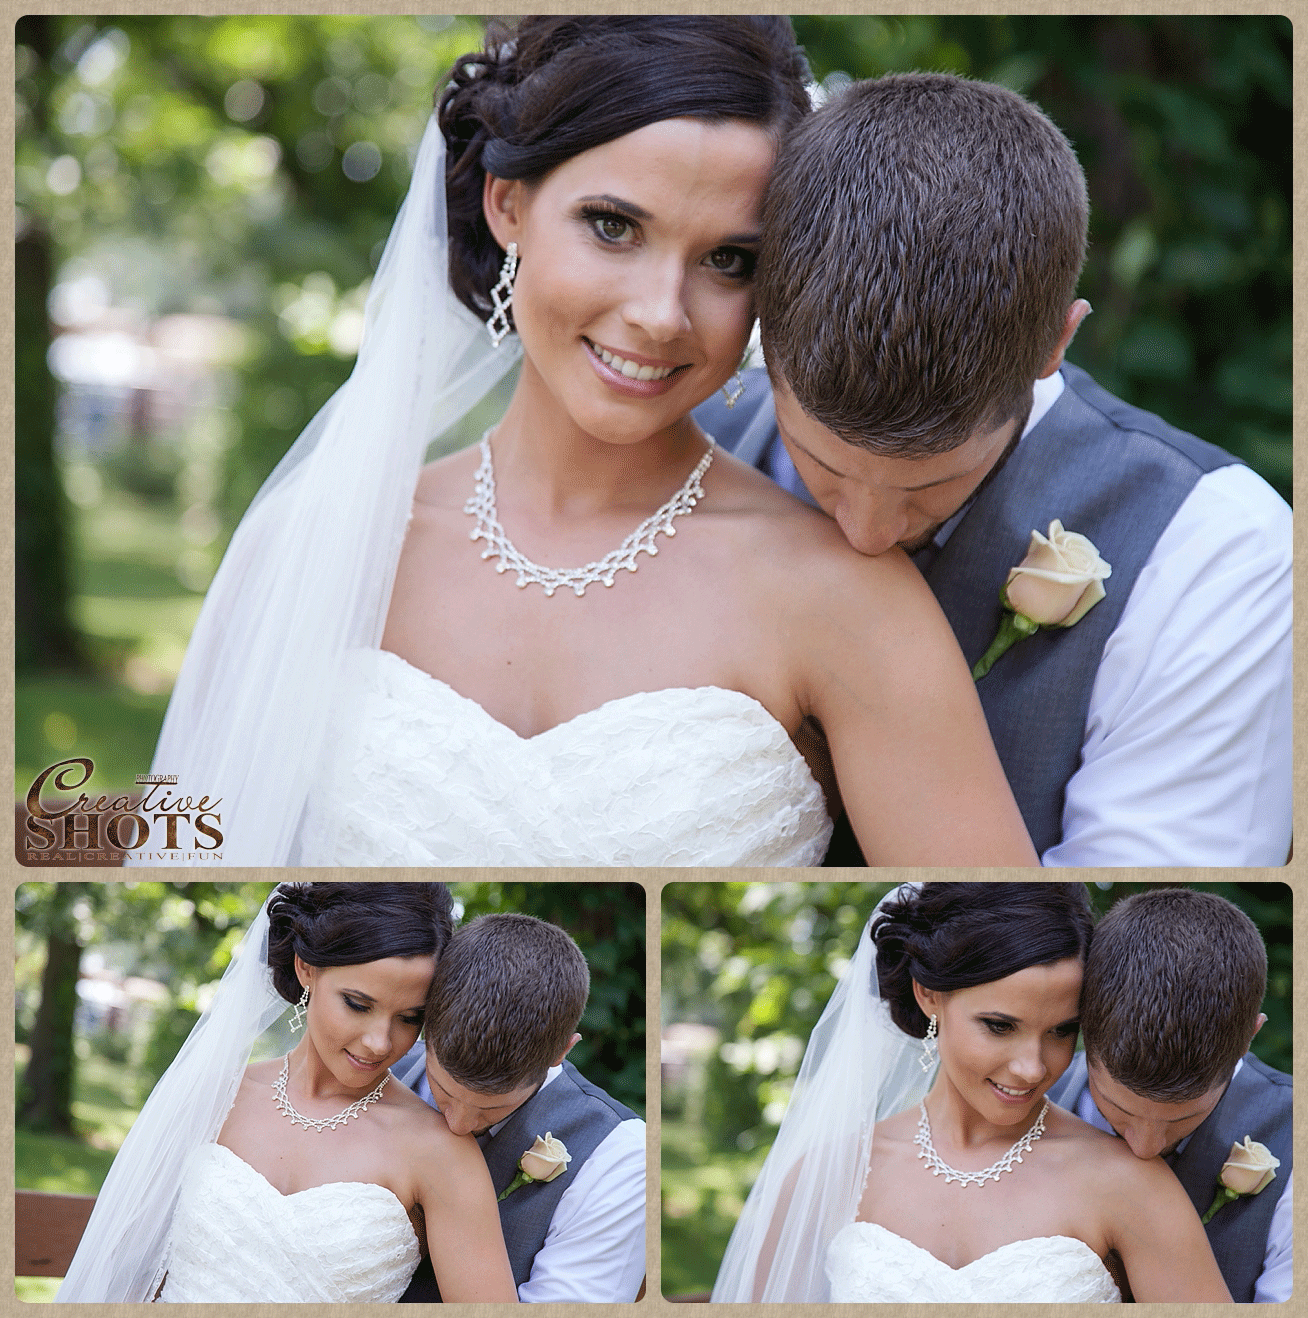 Justin jordan wedding at samuel cedars creative shots for A valeria boss salon